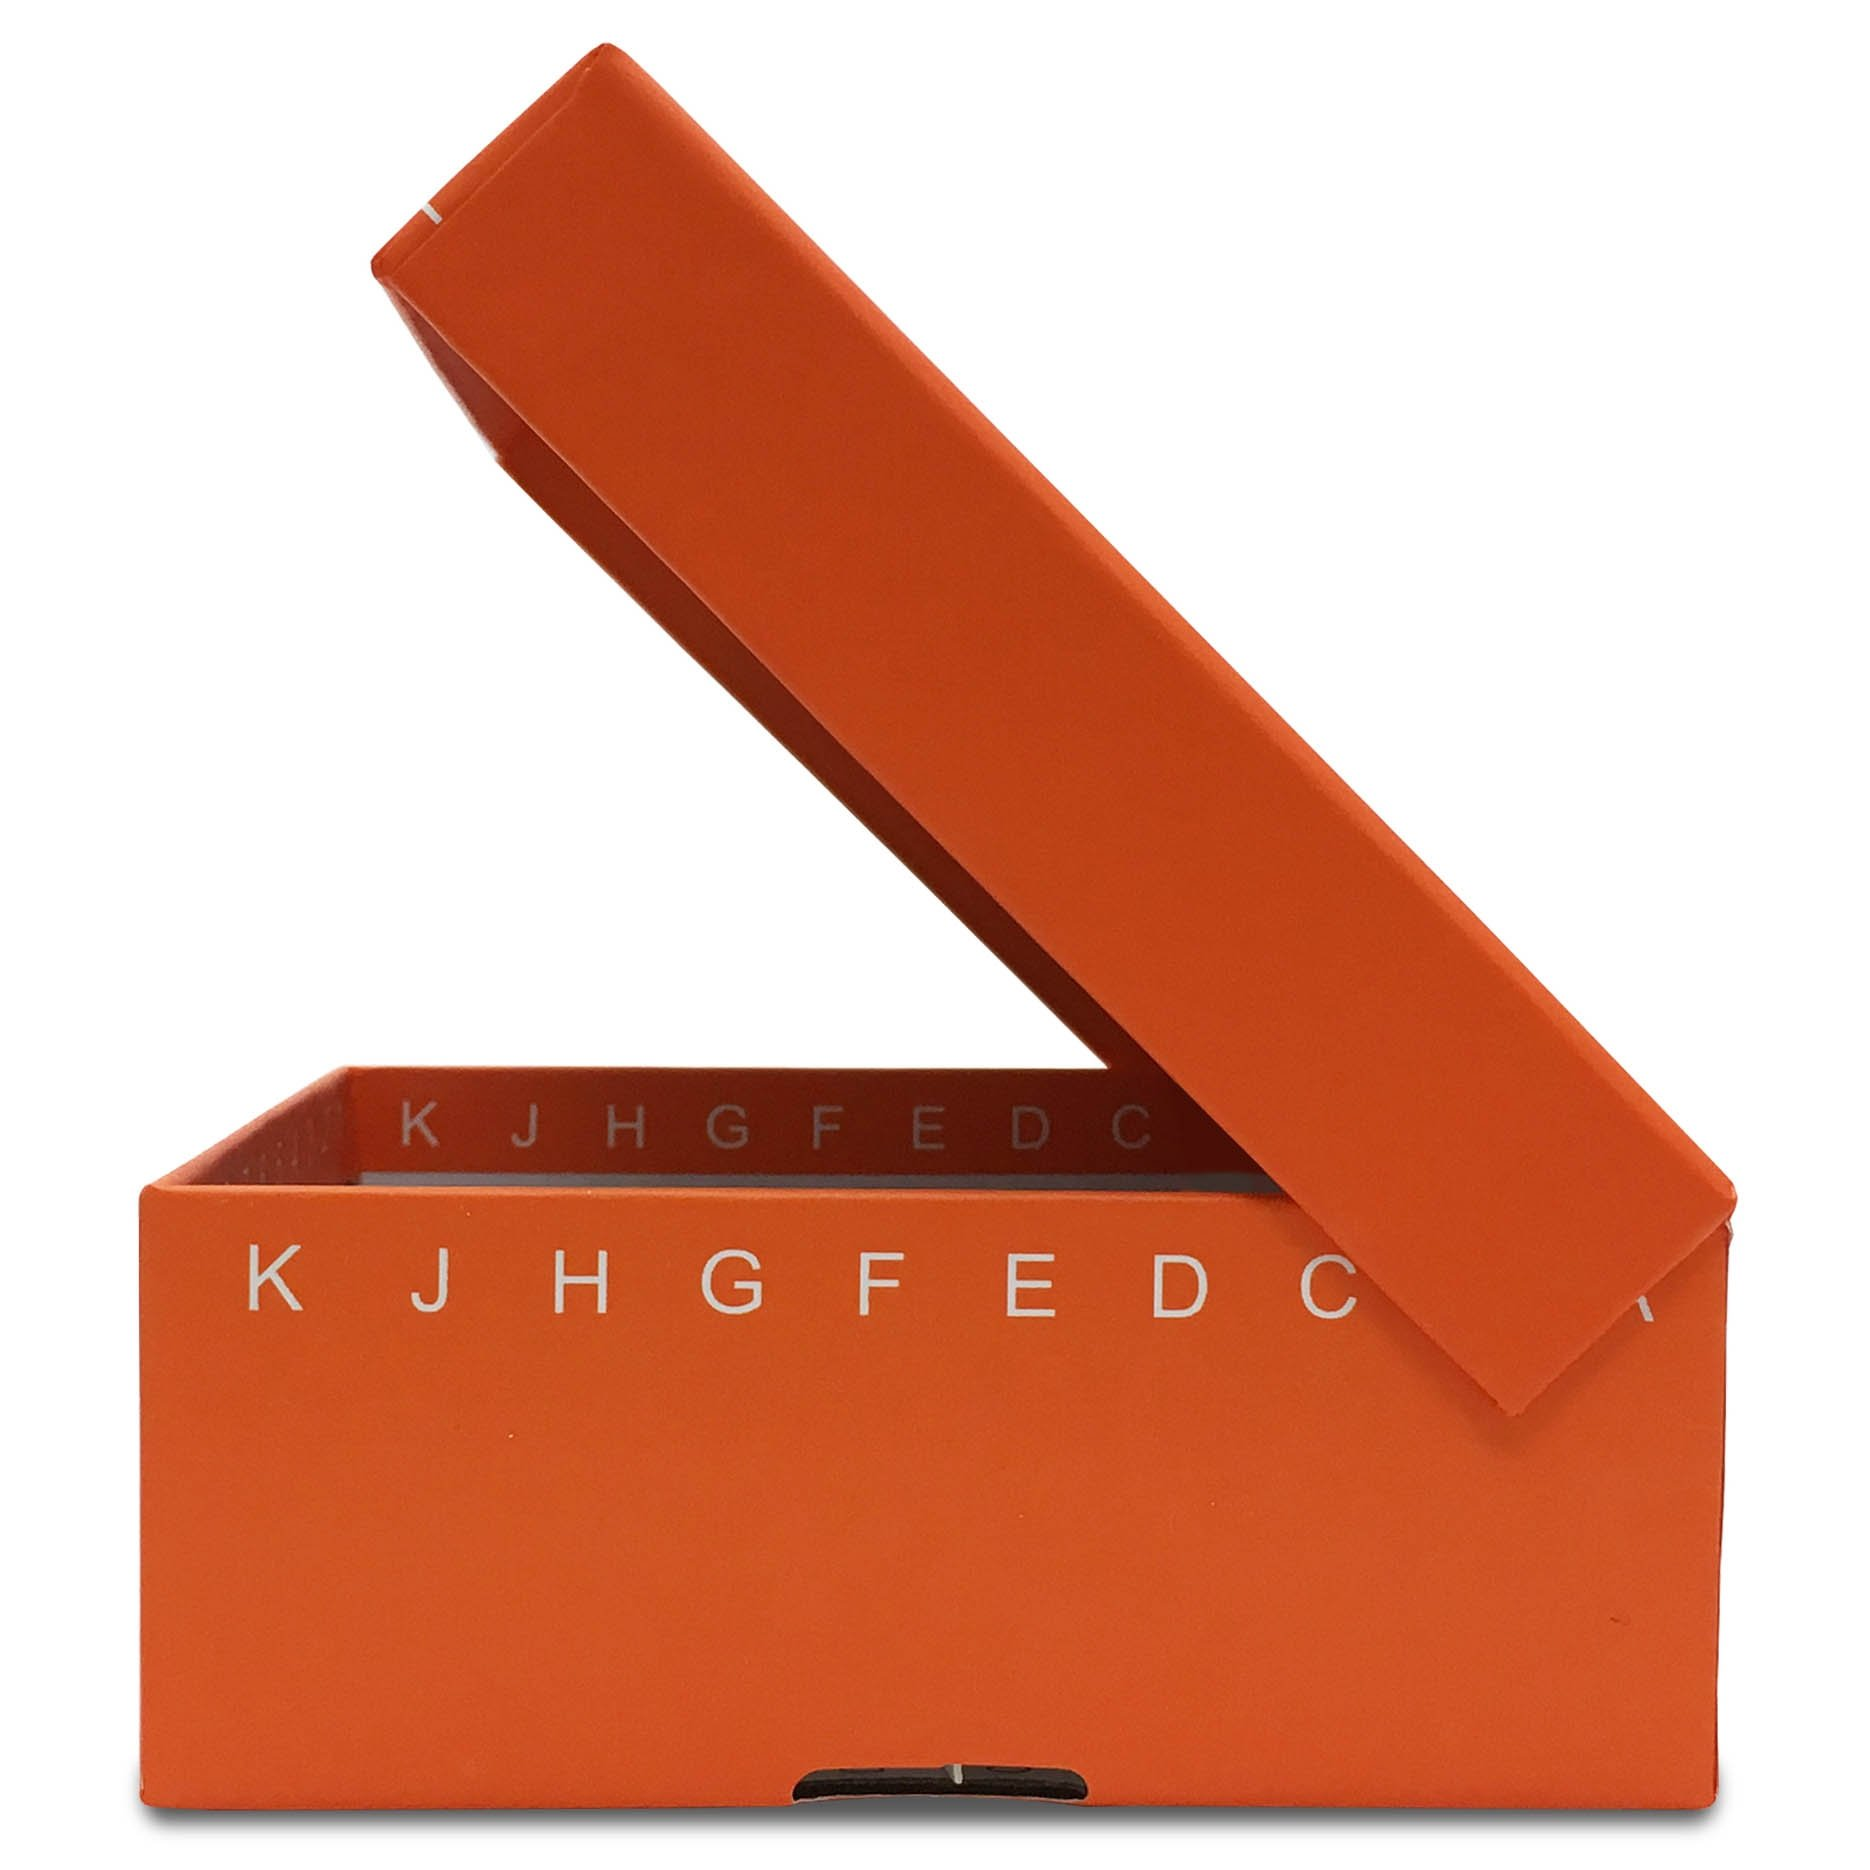 FlipTop Cardboard Freezer Box 100-Place with Attached Hinged Lid - Orange (Pack of 5)